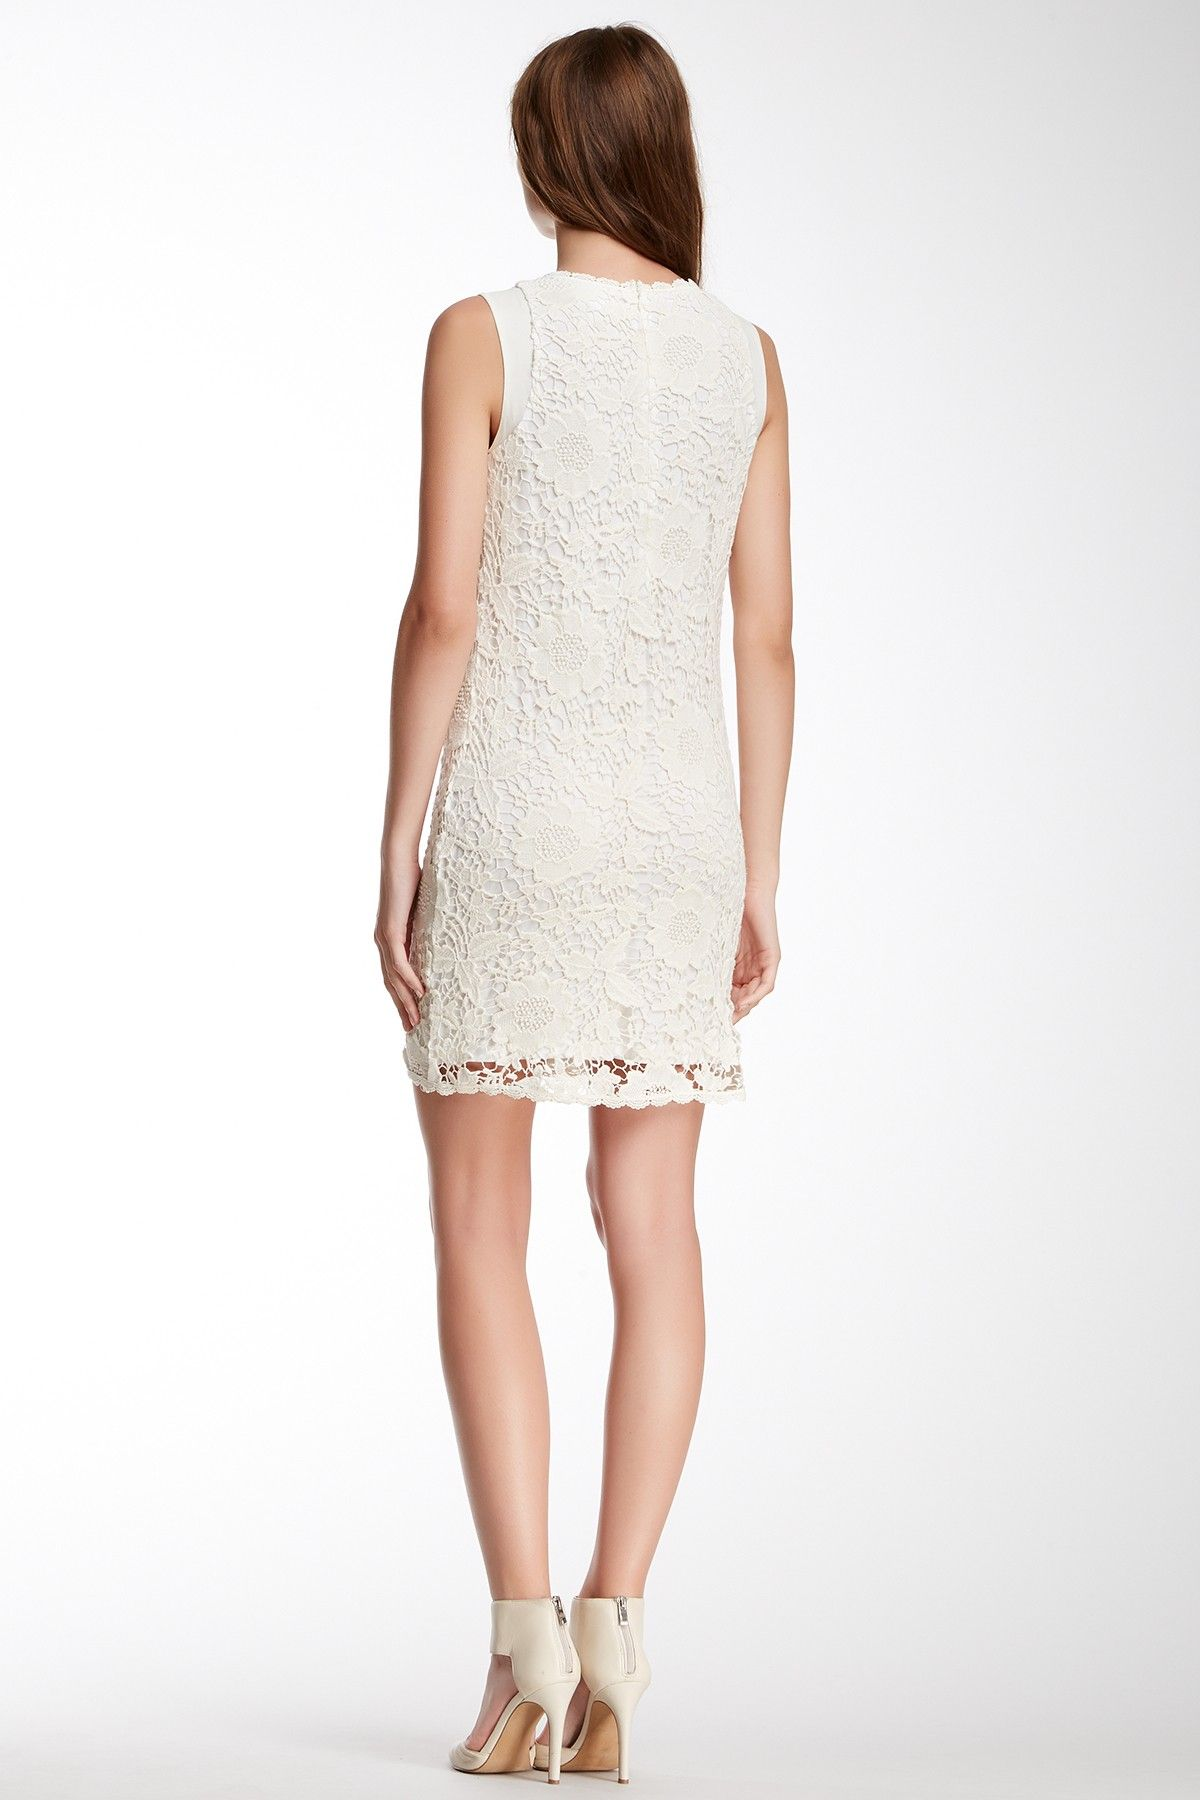 Velvet By Graham & Spencer Cotton Crochet Lace Sleeveless Dress by Velvet By Graham & Spencer on @nordstrom_rack